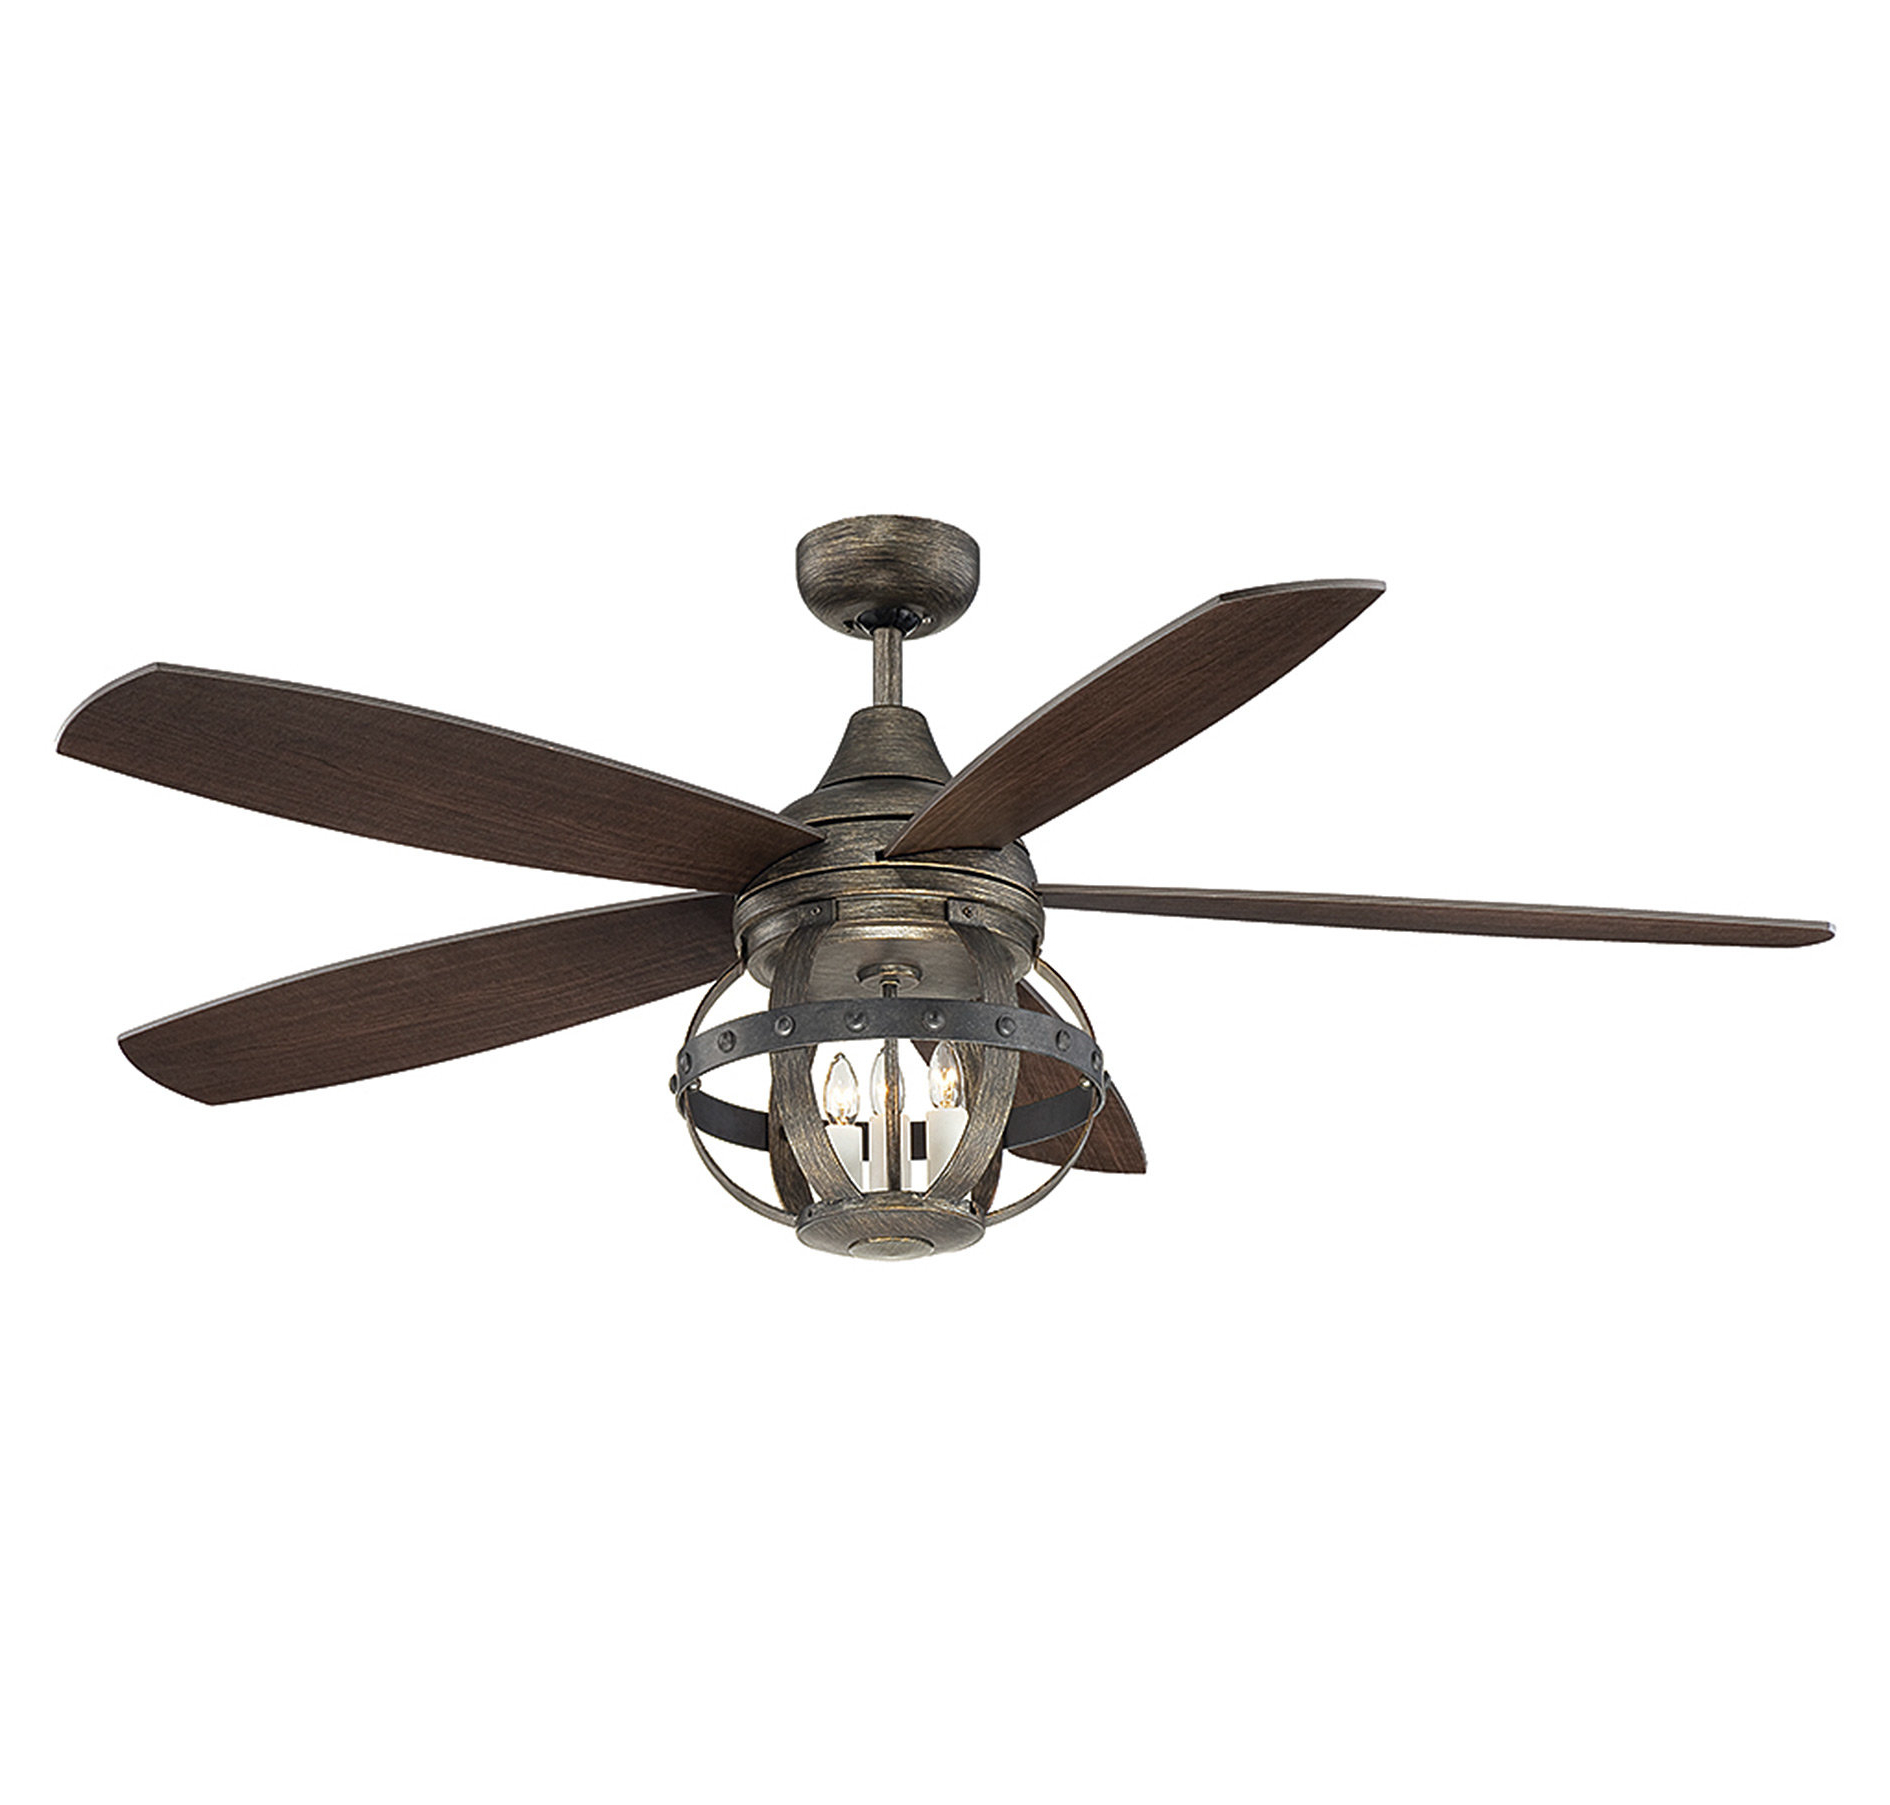 "52"" Wilburton 5 Blade Ceiling Fan With Remote, Light Kit Included Intended For Well Liked Bennett 5 Blade Ceiling Fans With Remote (Gallery 19 of 20)"